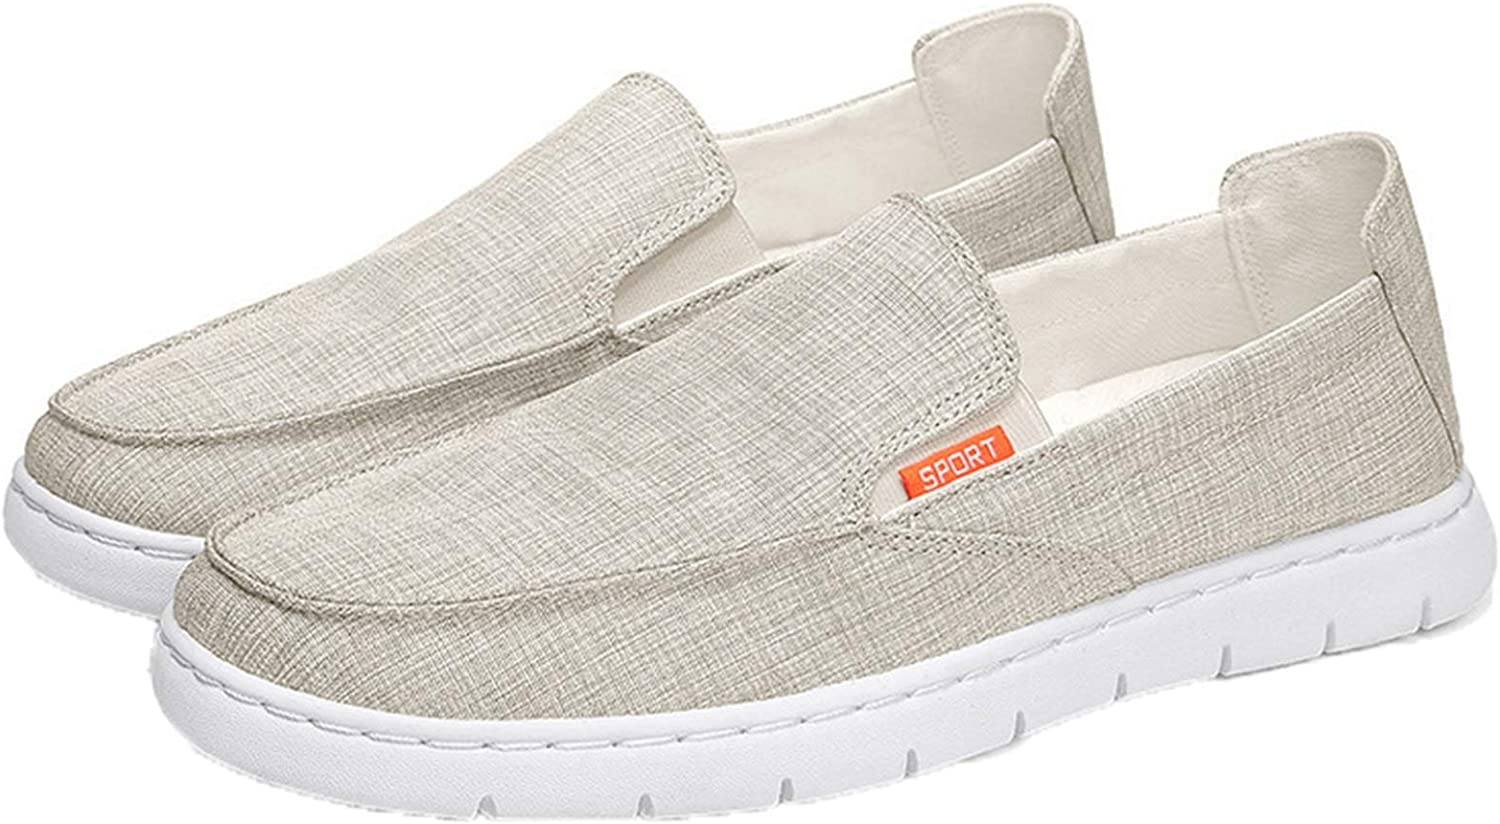 Canvas Shoes for Men Slip-On Low-Top Breathable Casual Shoes Anti-Slip Lightweight Solid Color Loafers